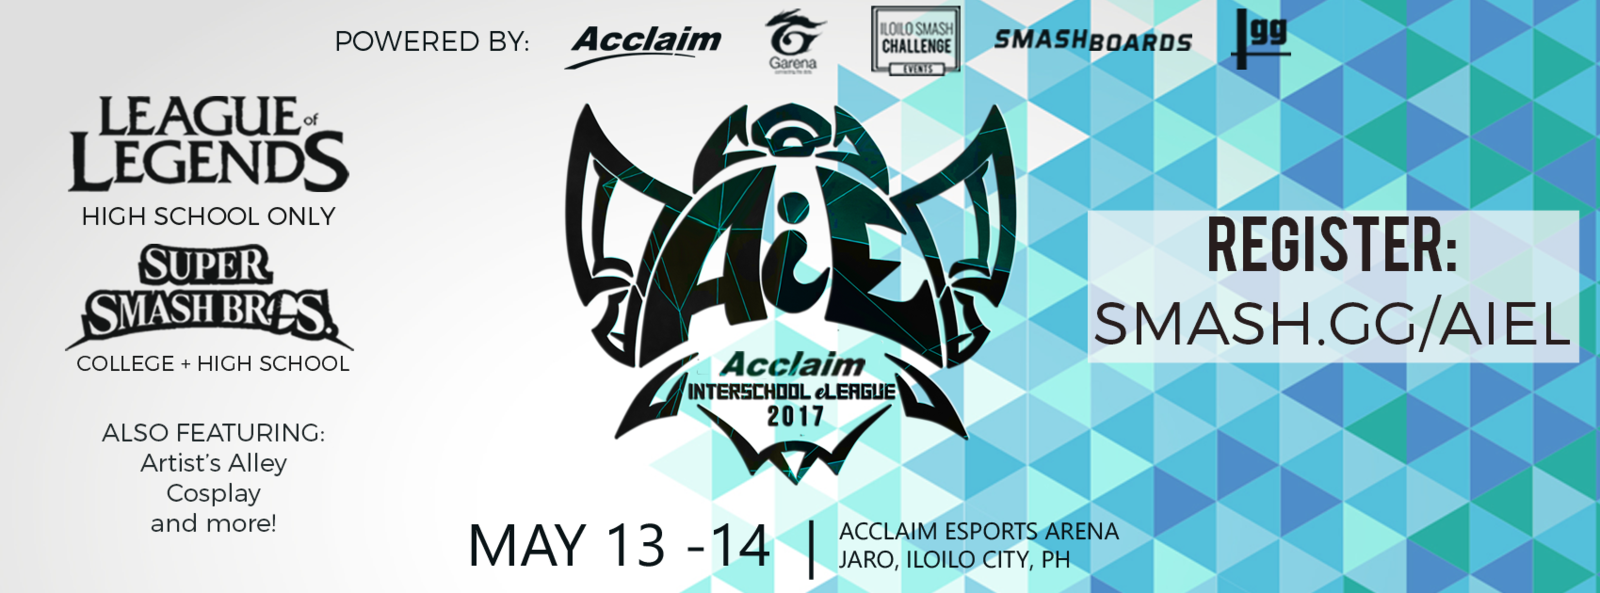 Acclaim Interschool eLeague (Photo: HS, SmashGG)